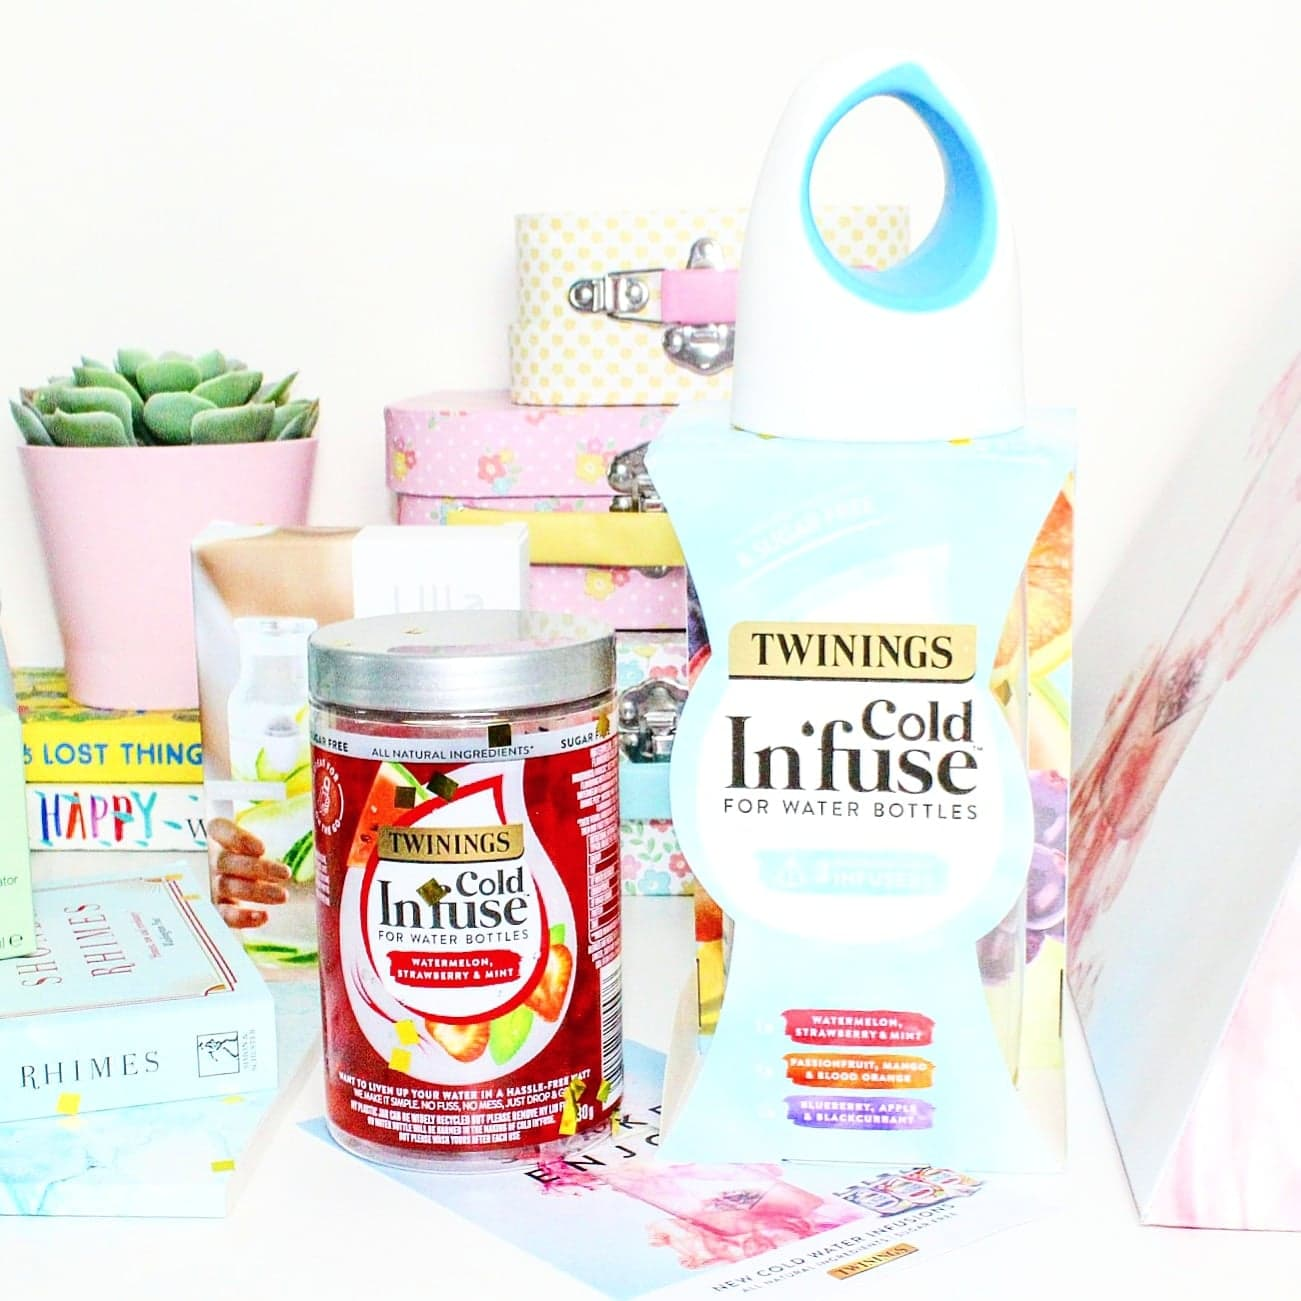 New Twinings Cold Infuse | Their First Ever Cold Water Infusion